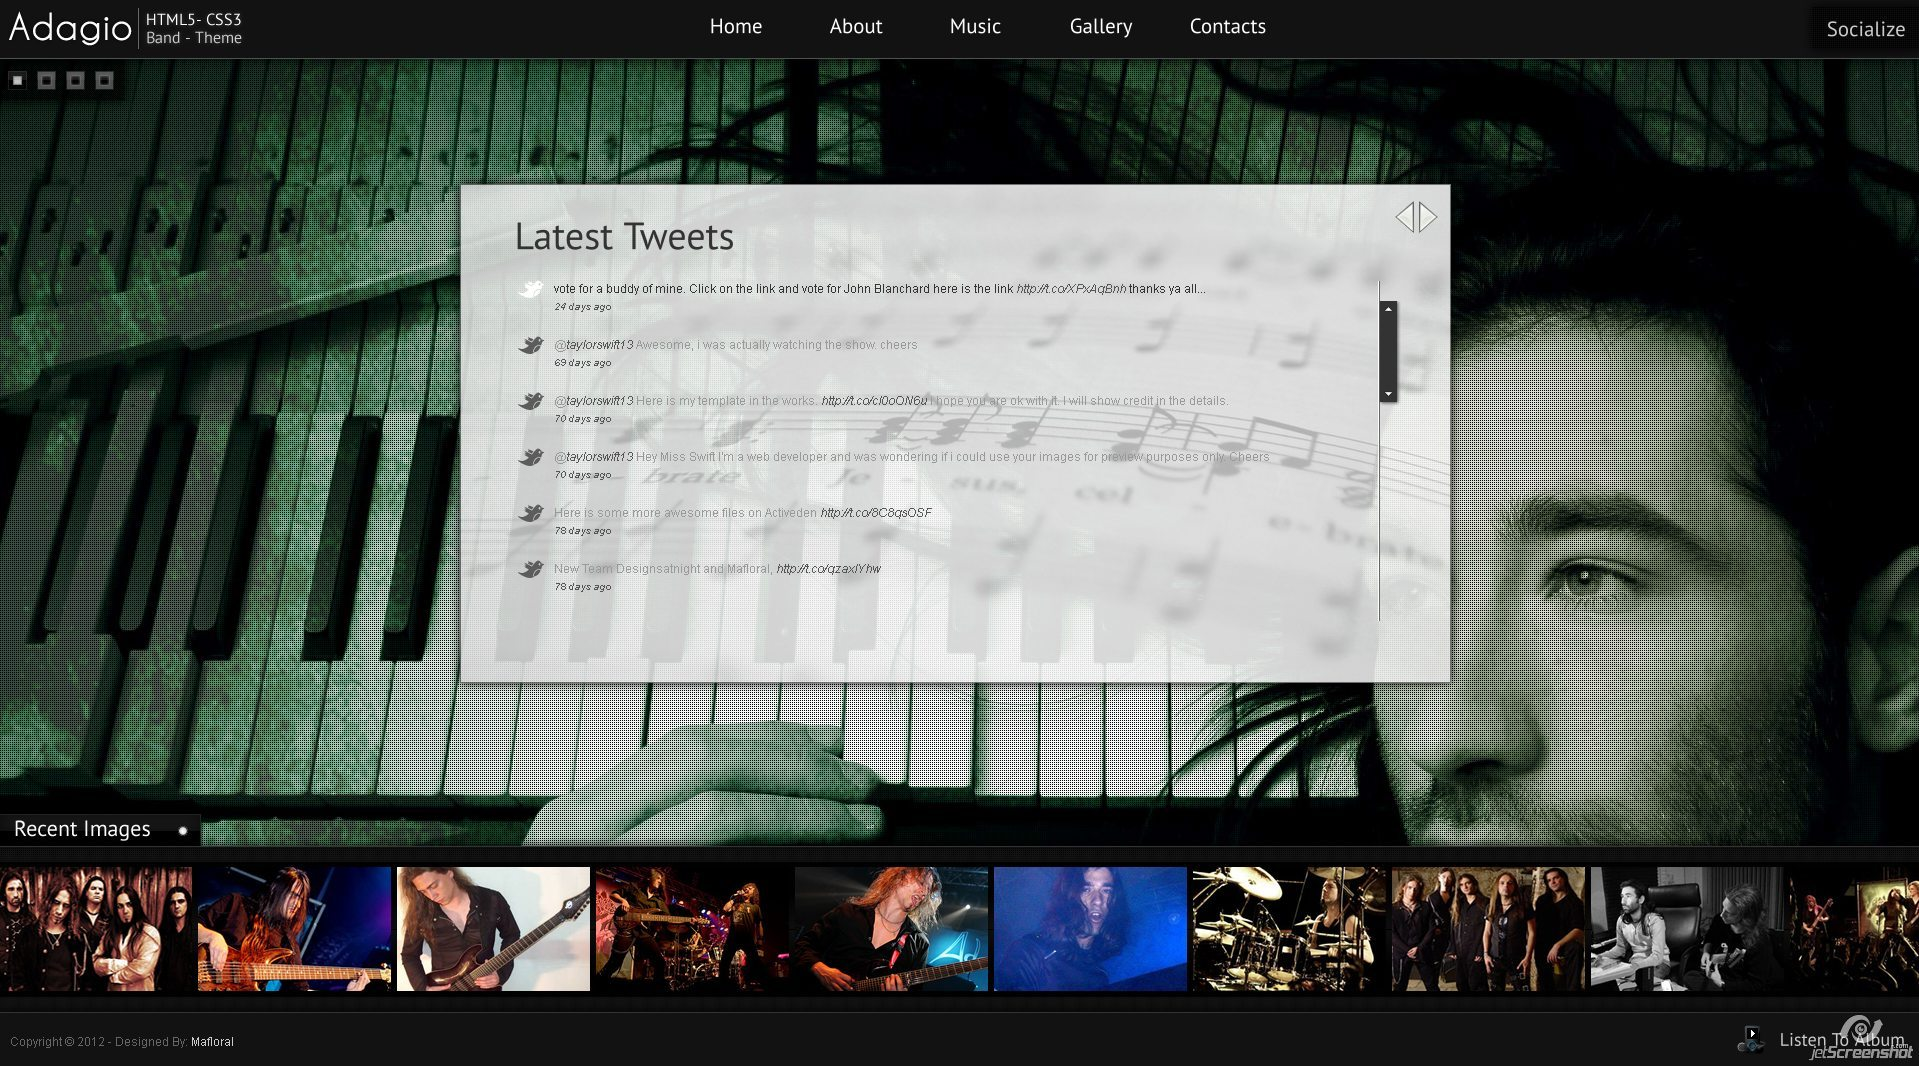 Adagio Musician Template - HTML5 - CSS3 - Tweets Page  - Read your latest tweets with this cool twitter reader in a content scroller to display and read all your latest tweets.